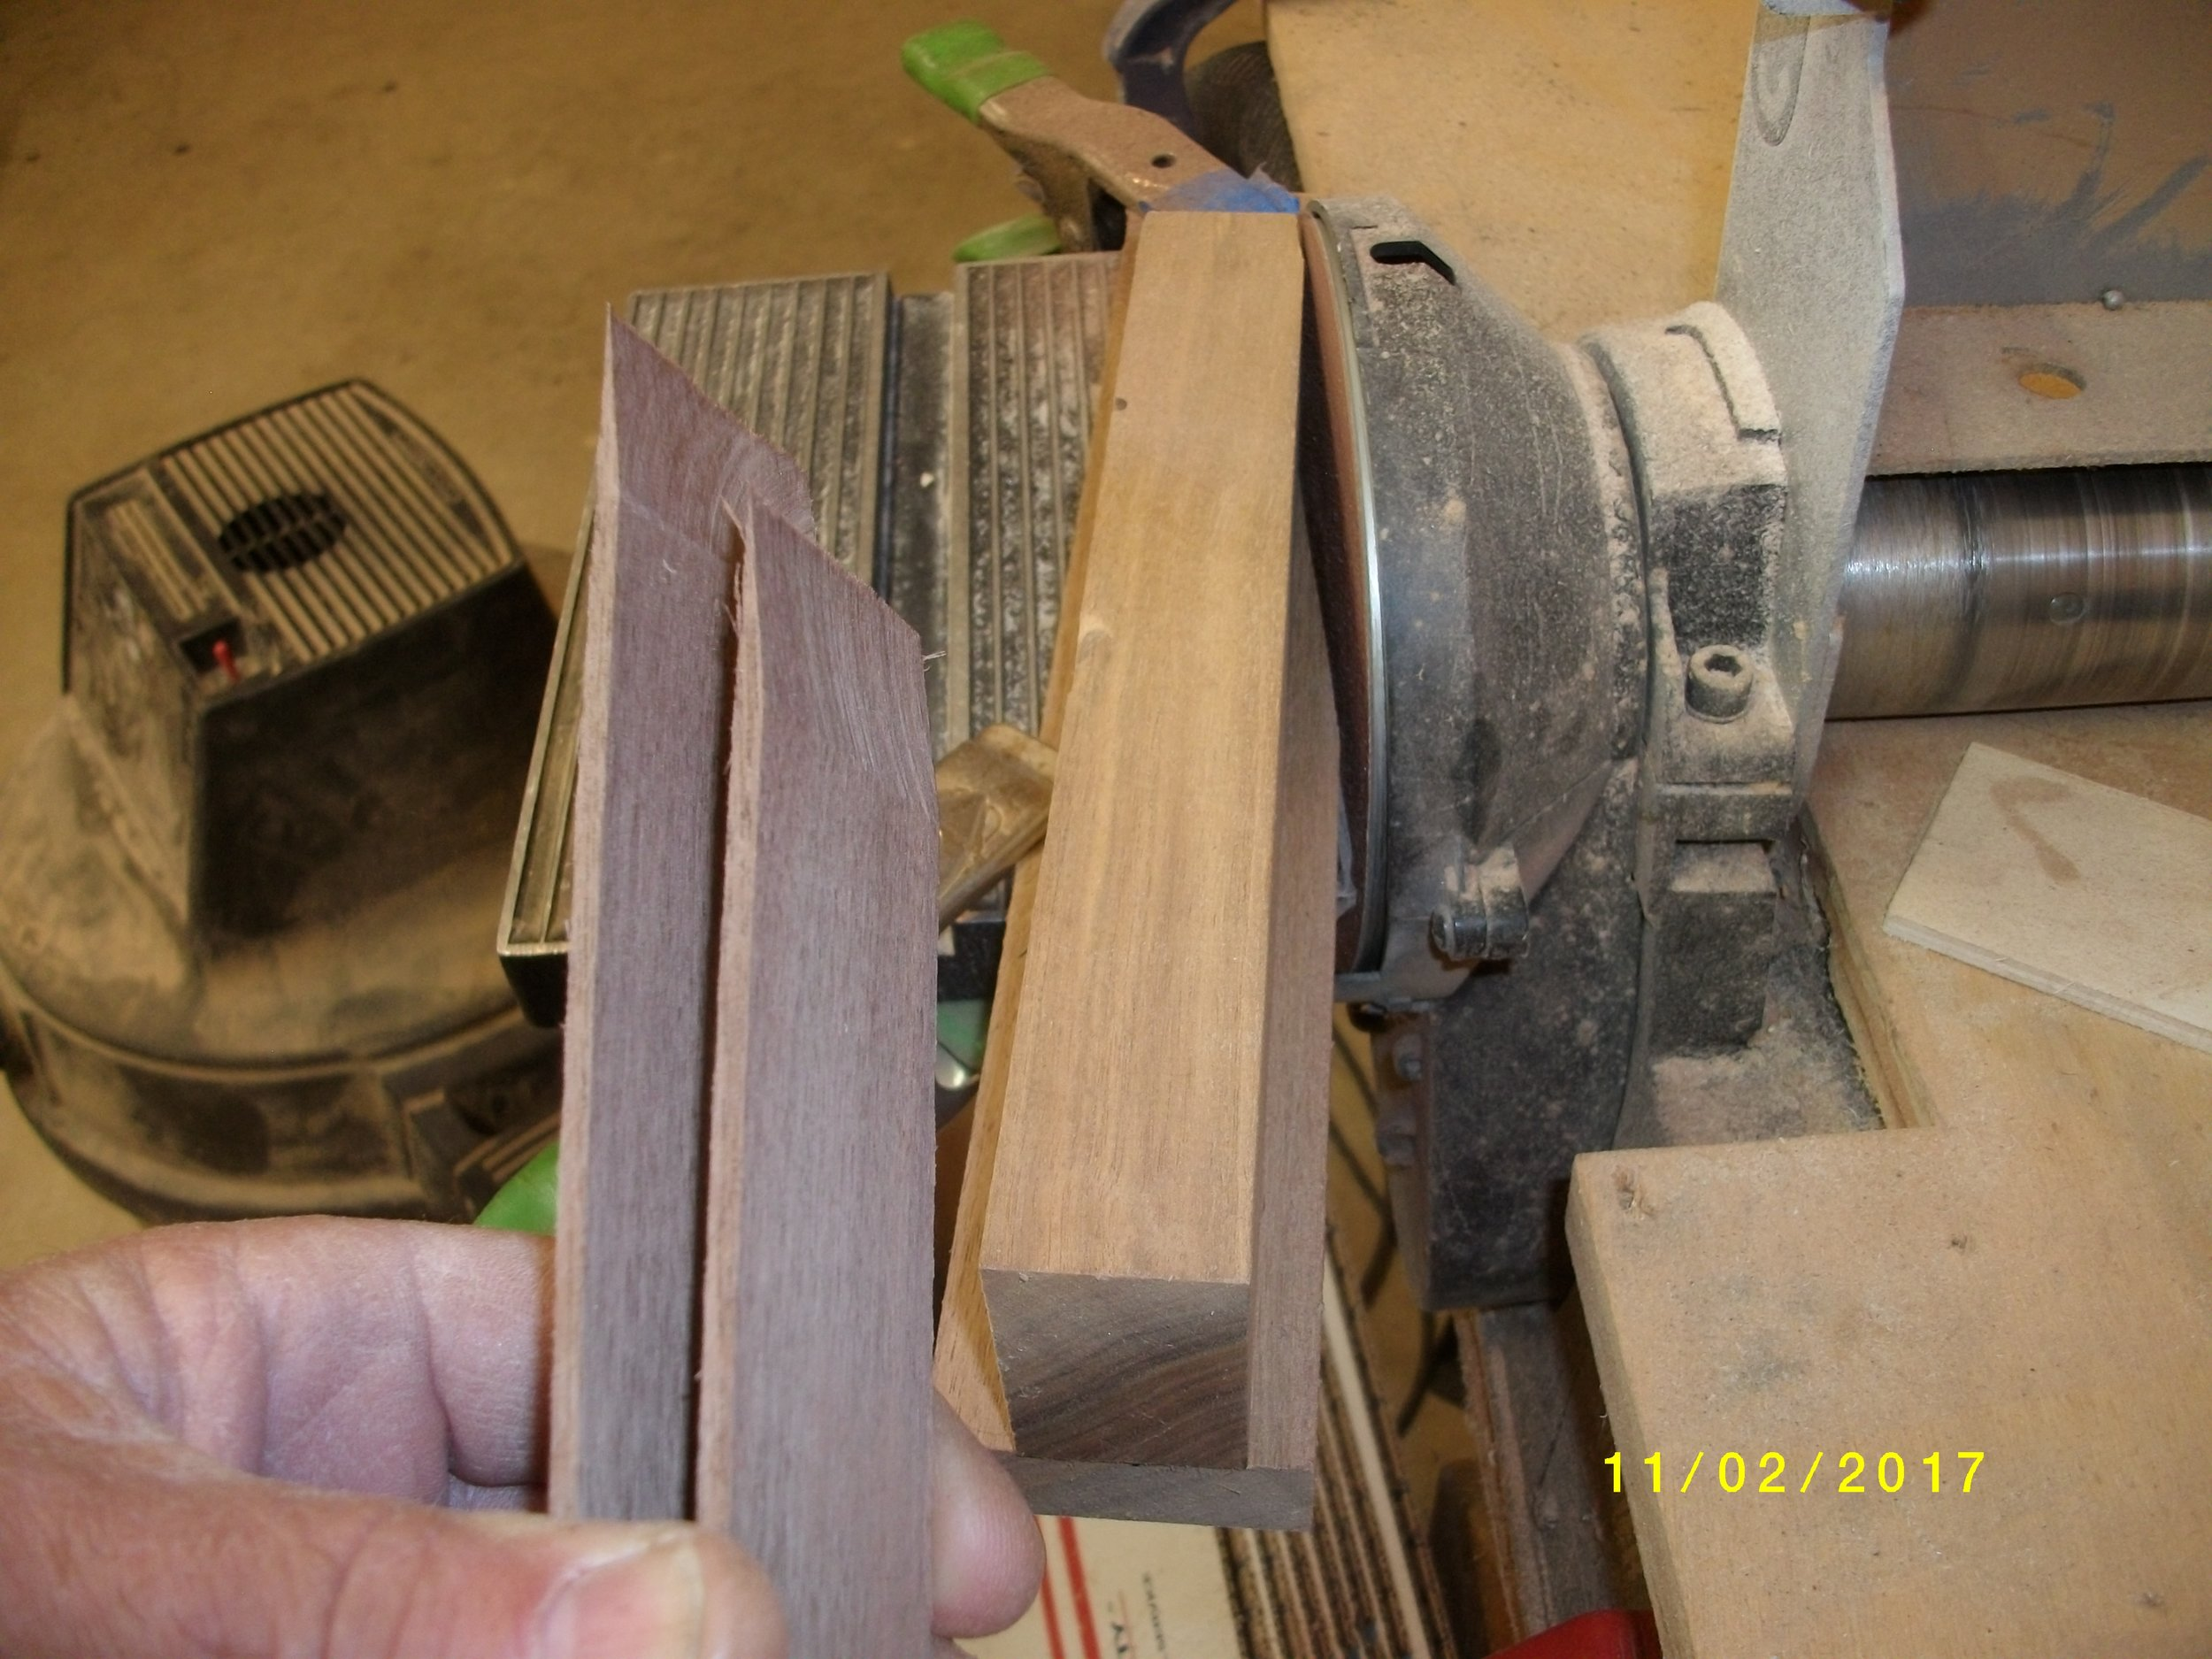 """Now to make 2 - 36"""" lams into a full length one. A simple jig for the disc sander, put the lams together and slide in, it may try to grab it so hold on to them. I grind one with the other backing it, then switch places with them and finish the other one. Try to get them ground squarely so the joint fits nice."""